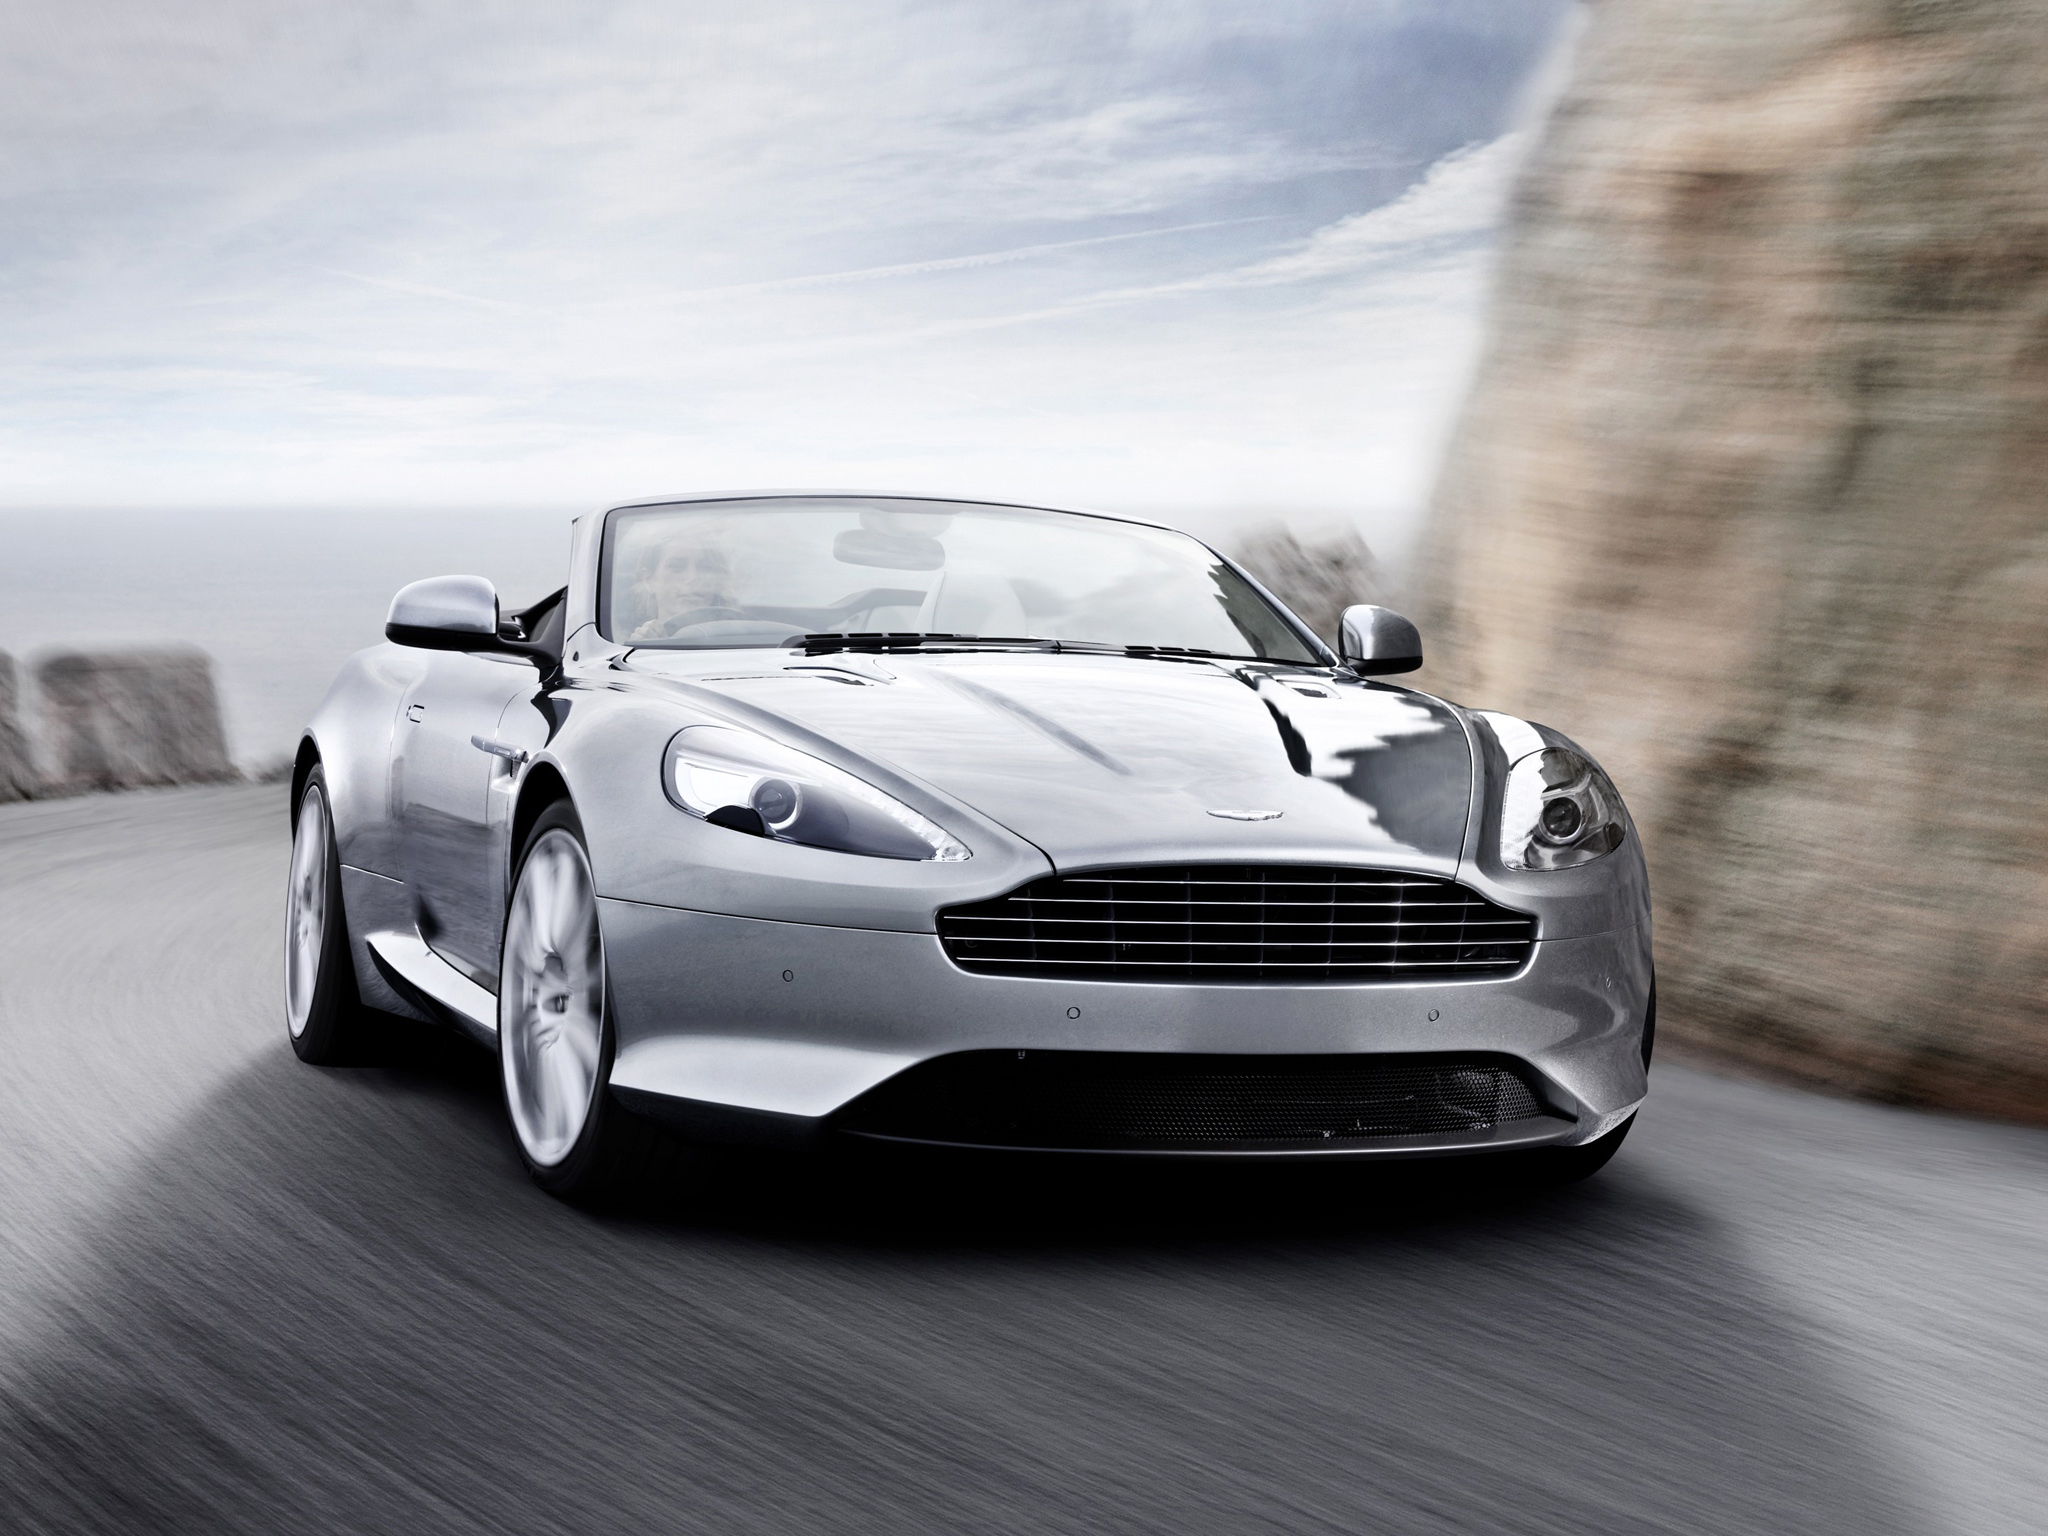 Aston Martin Virage Volante 2011–2012 Wallpaper For Computer